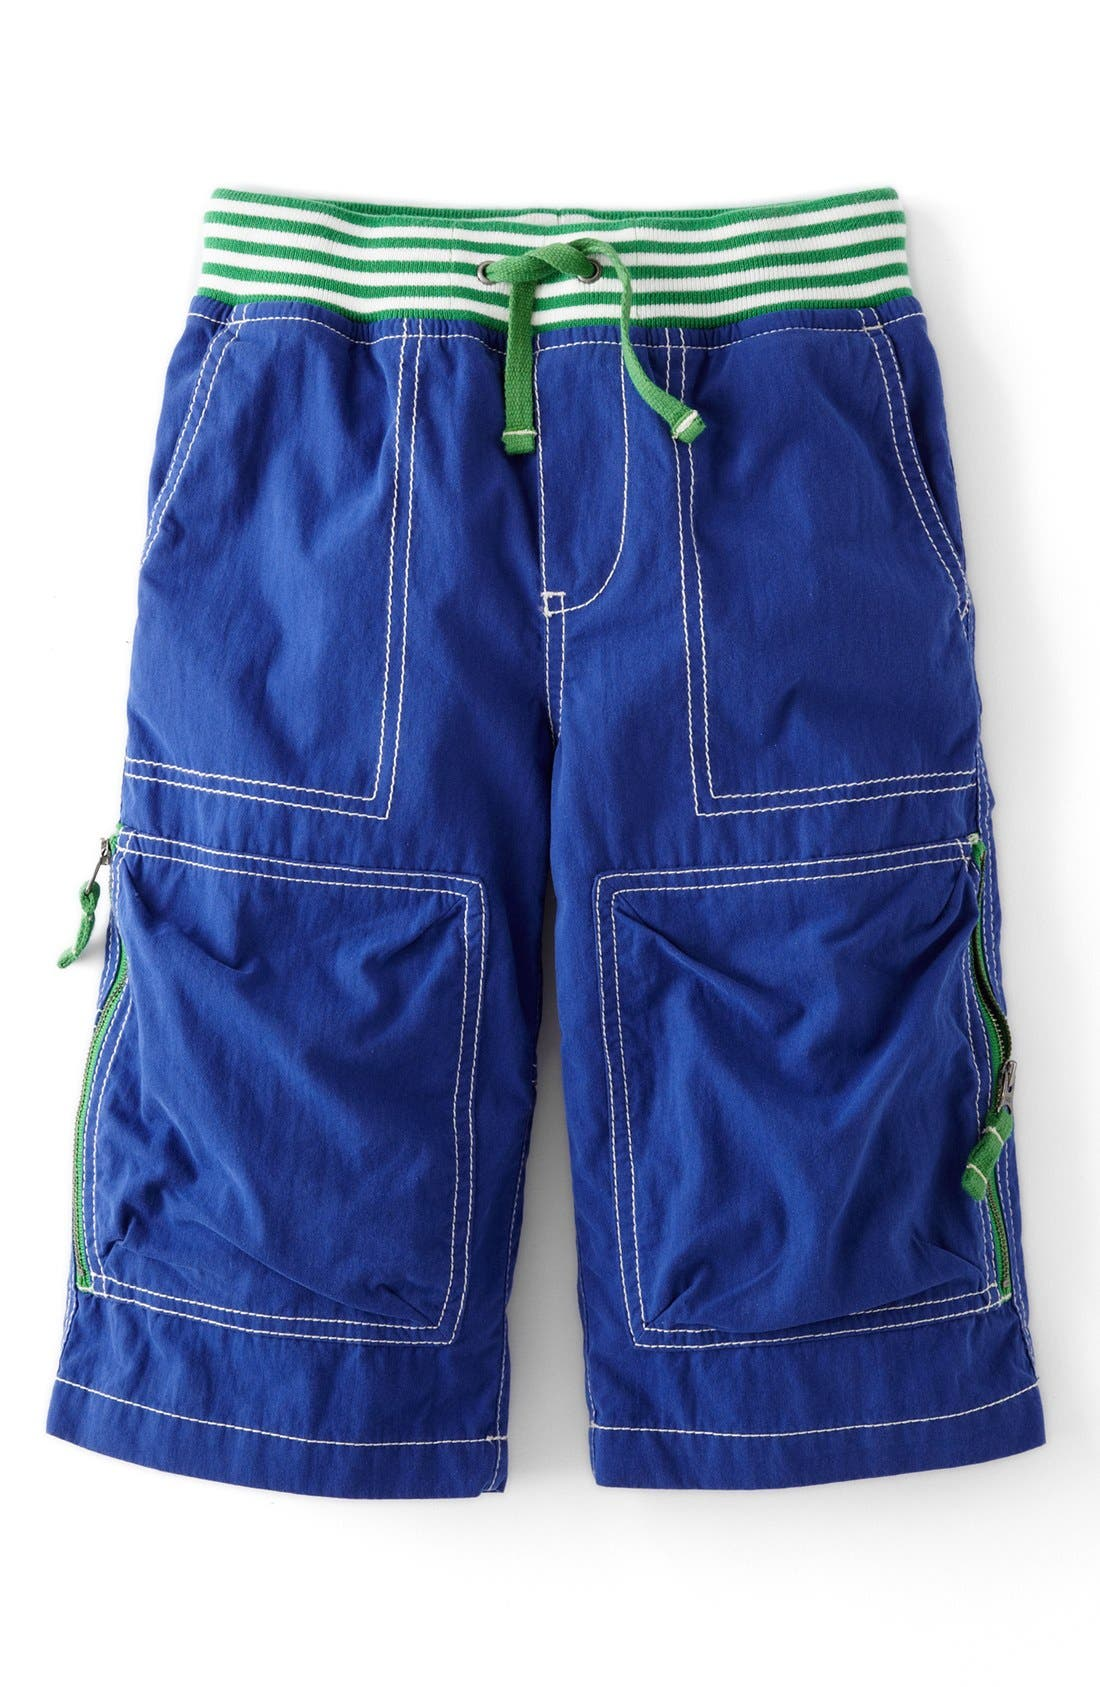 Main Image - Mini Boden 'Techno' Mid Calf Shorts (Toddler Boys)